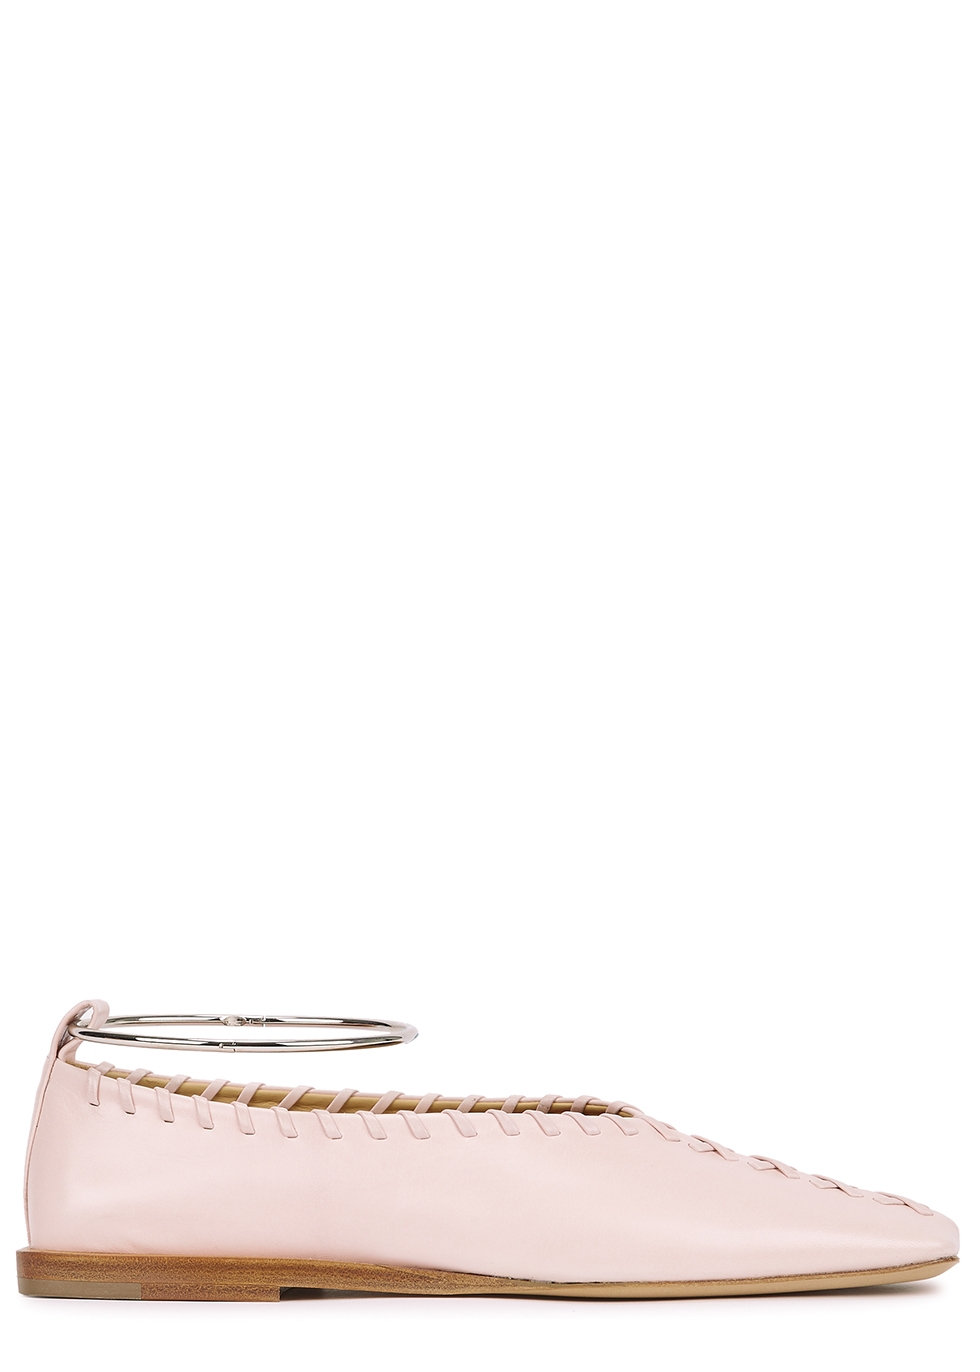 Light pink whipstitched leather flats